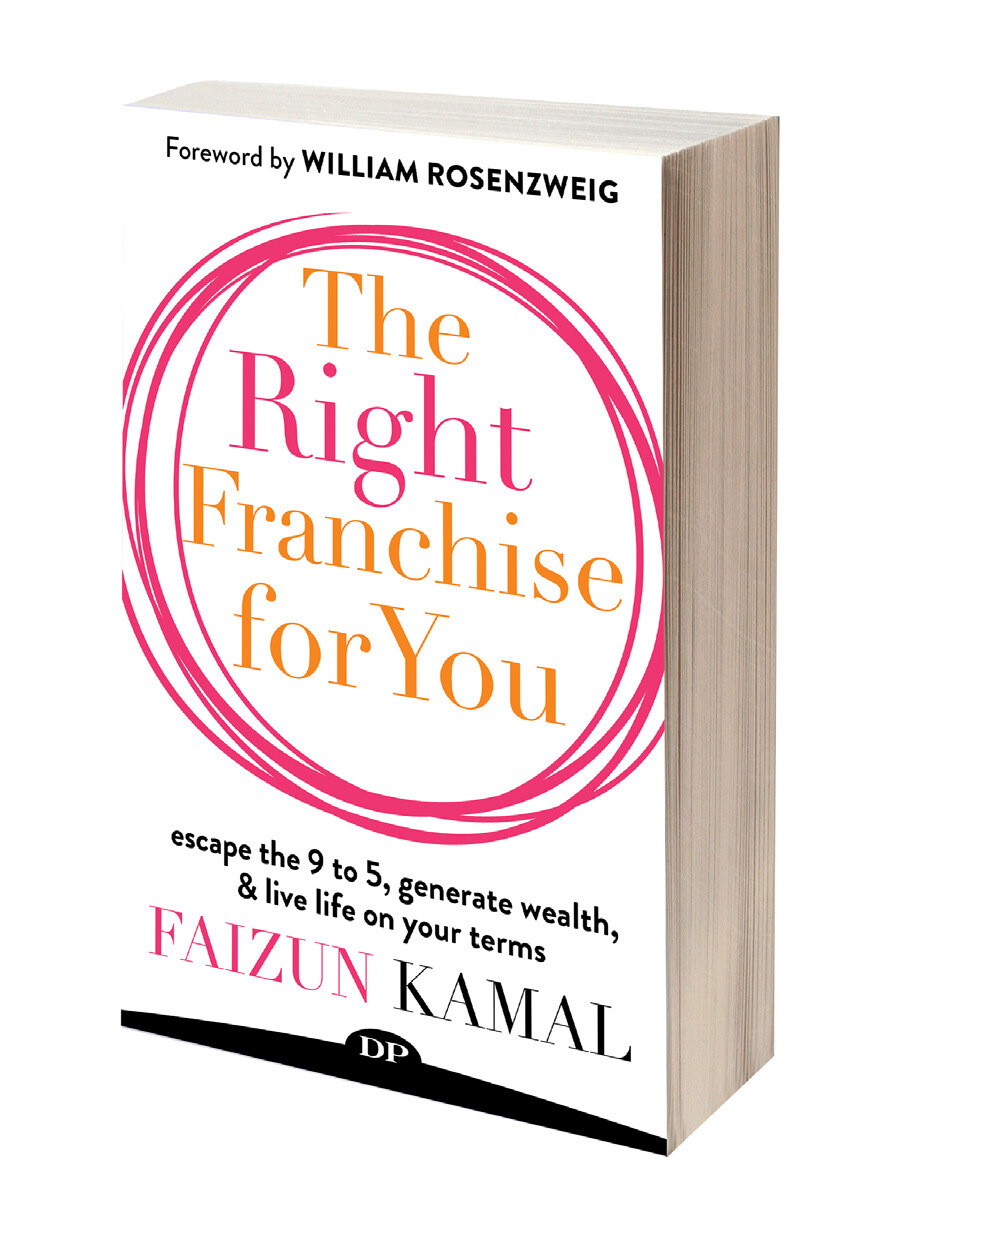 story from: The Franchise Woman